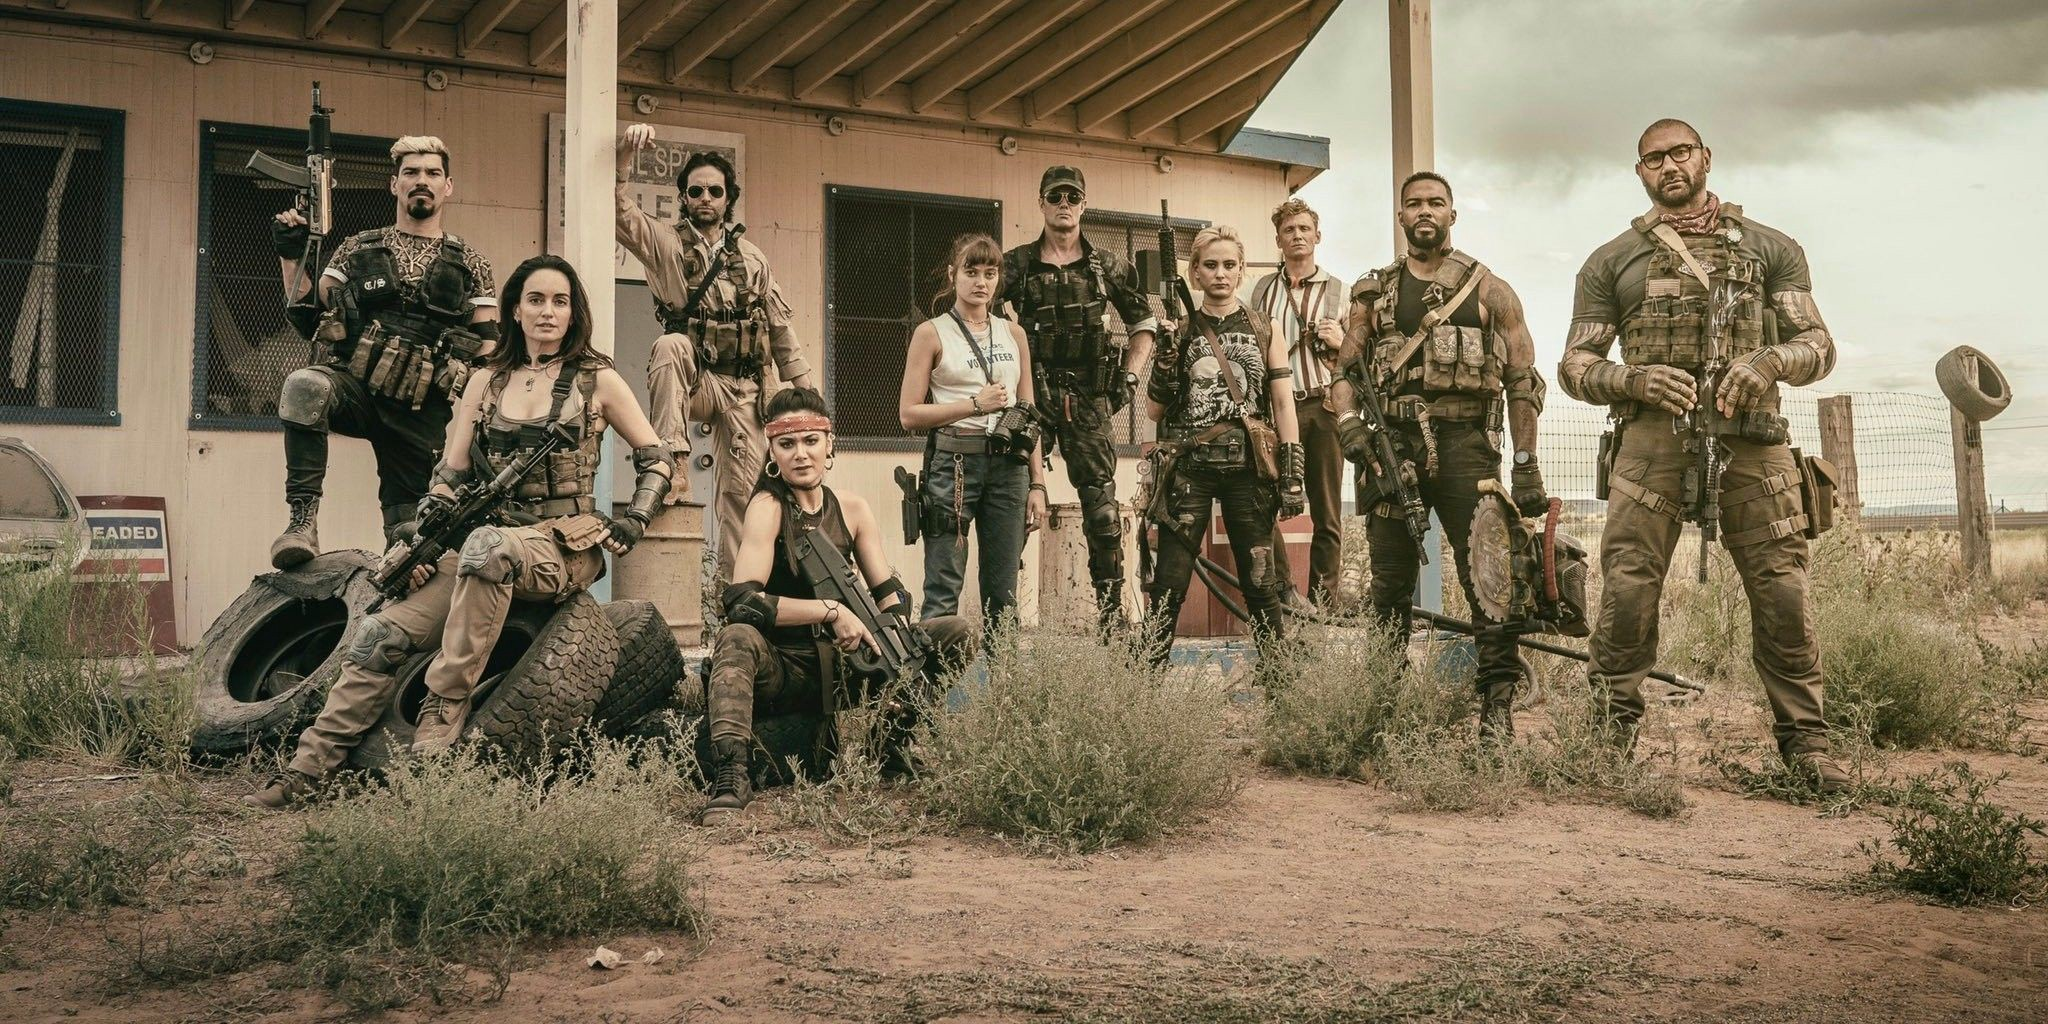 A bunch of armed mercenaries posing in front an abandoned house i the desert.